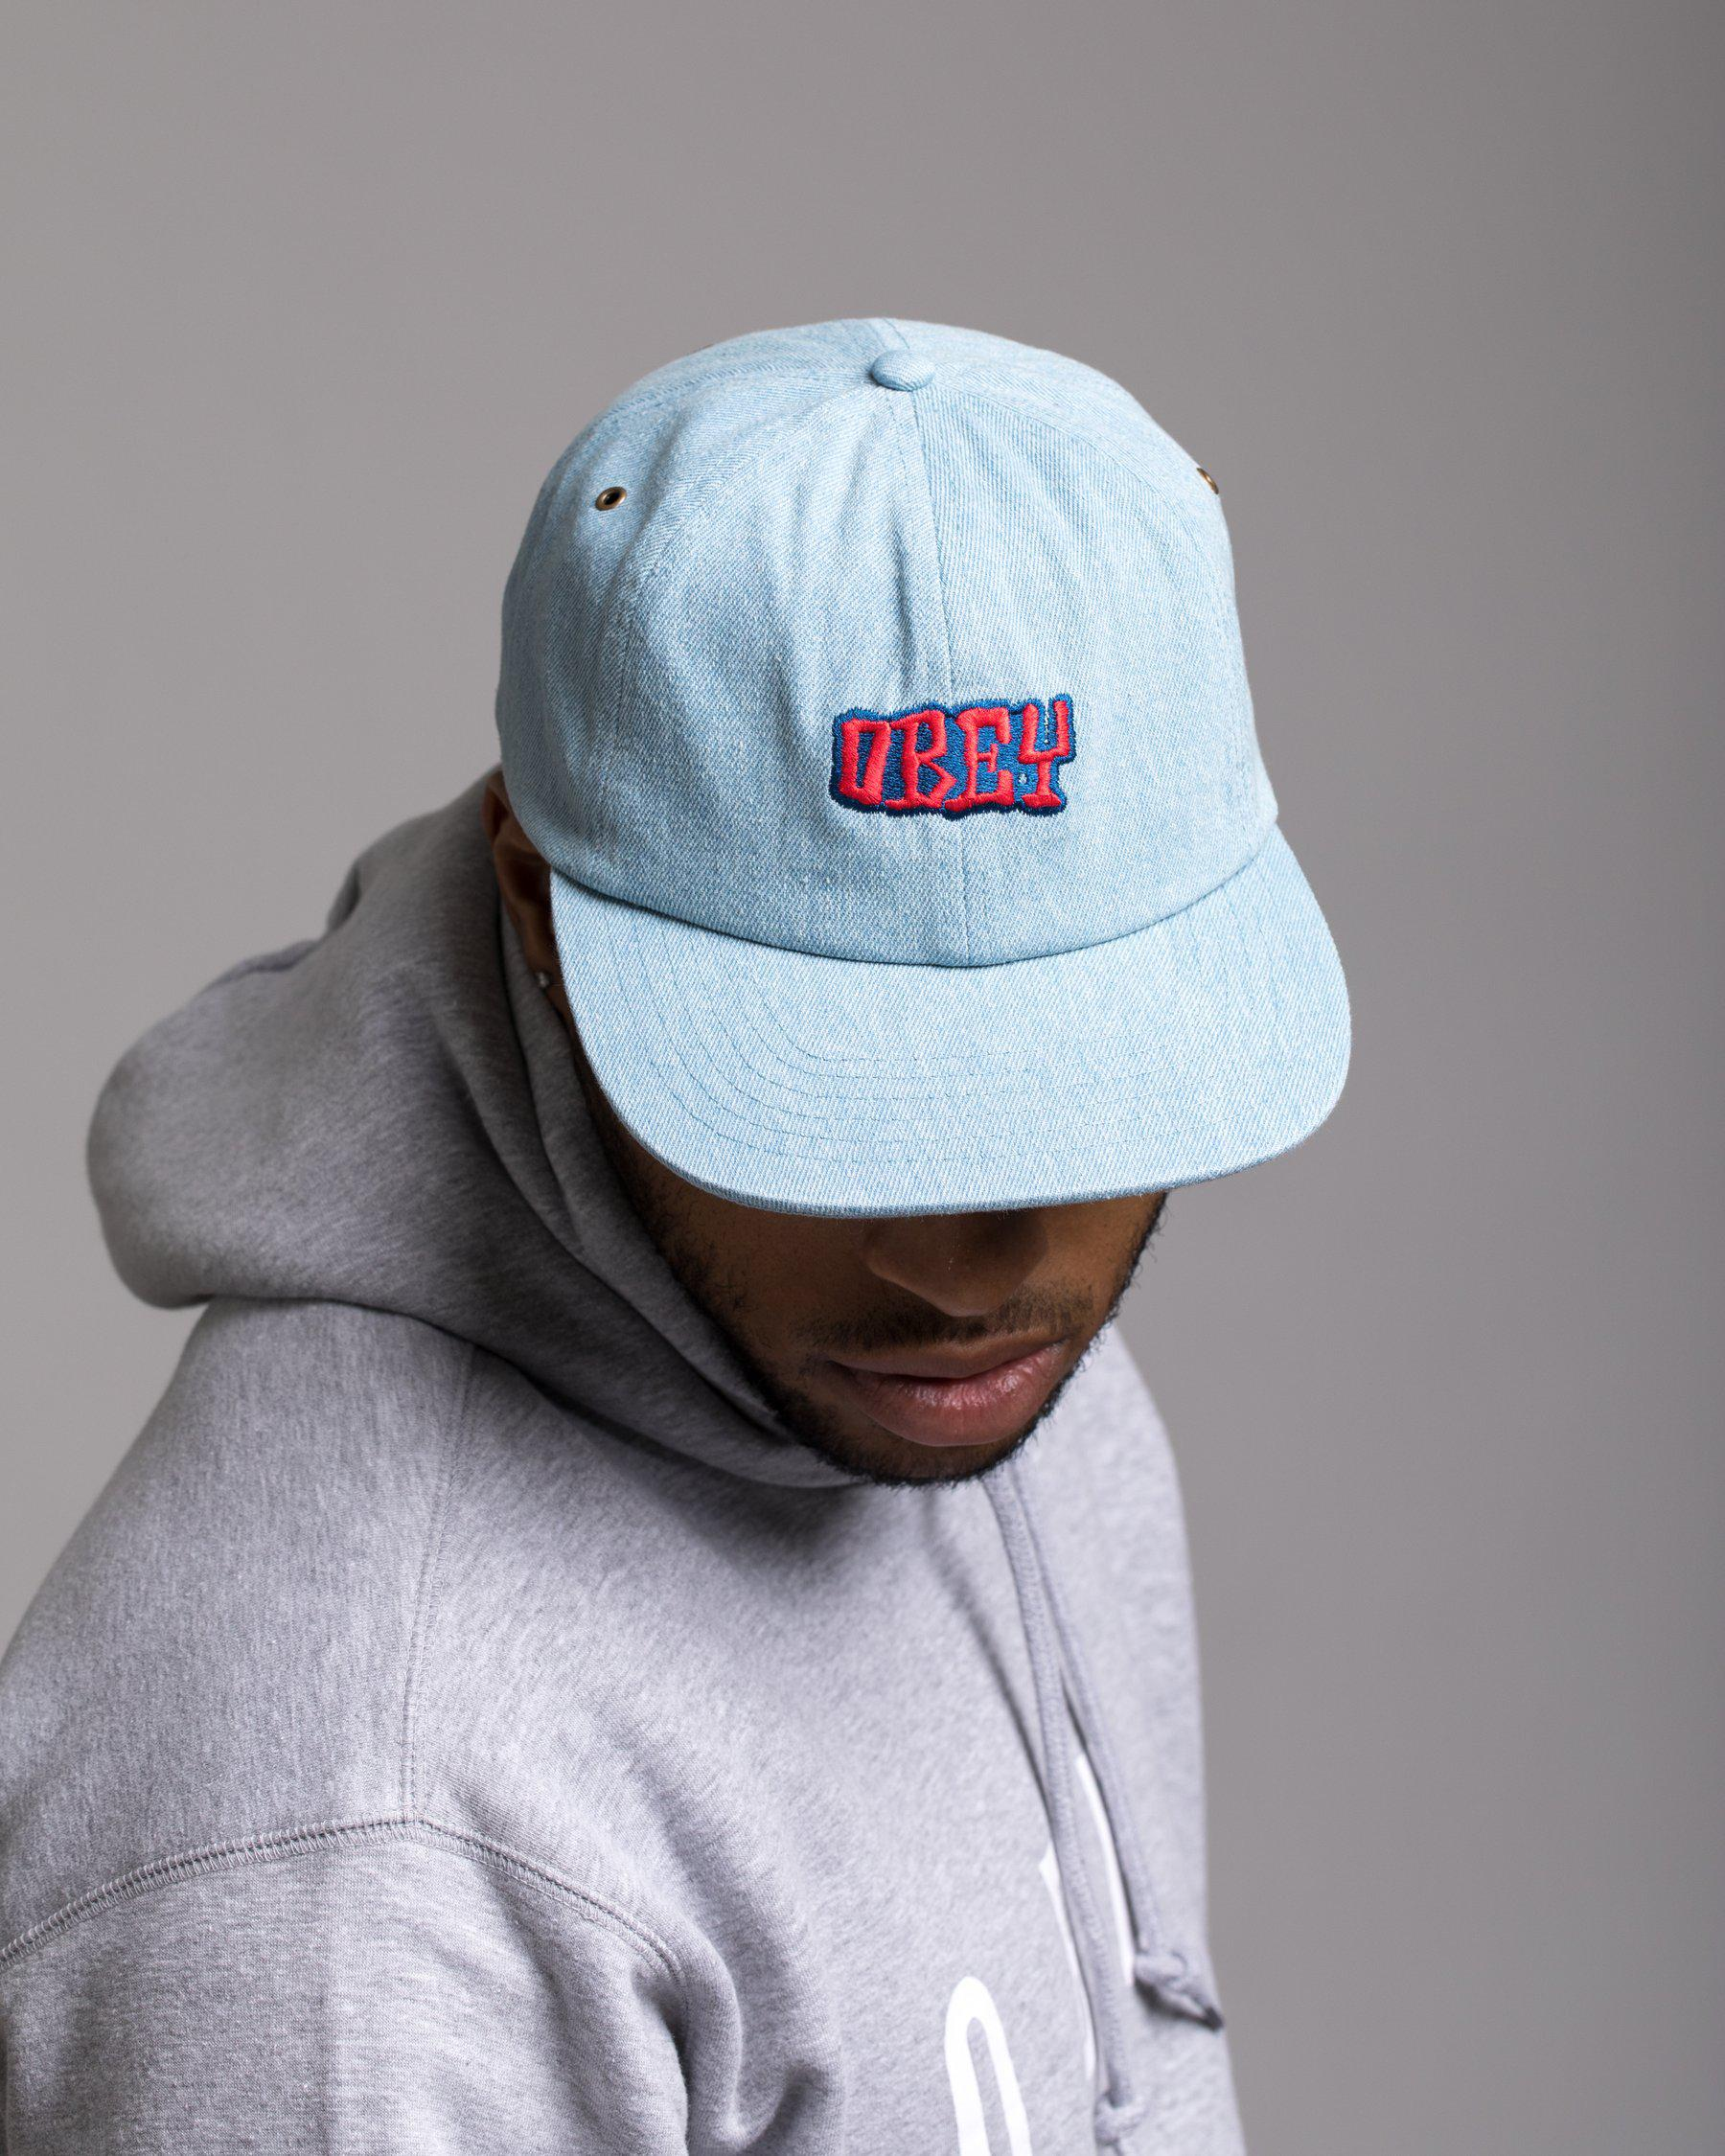 best service 09745 c51b8 ... new arrivals lyst obey campbell 6 panel hat in blue for men 0bad1 ccc19